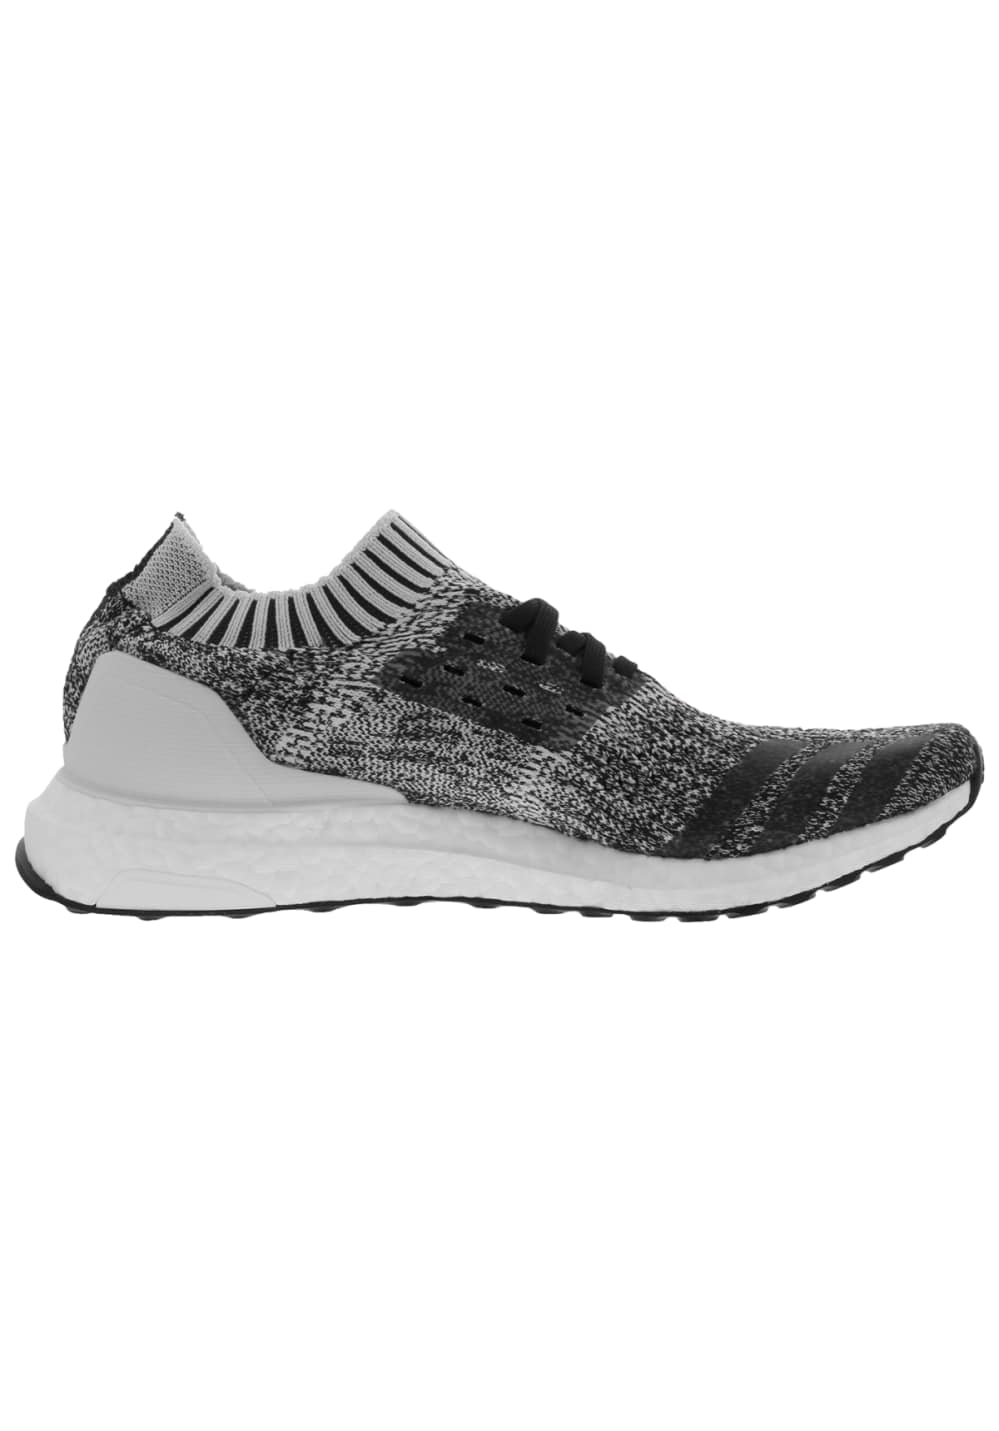 classic fit a50f9 fc4df adidas Ultra Boost Uncaged - Running shoes for Women - Pink